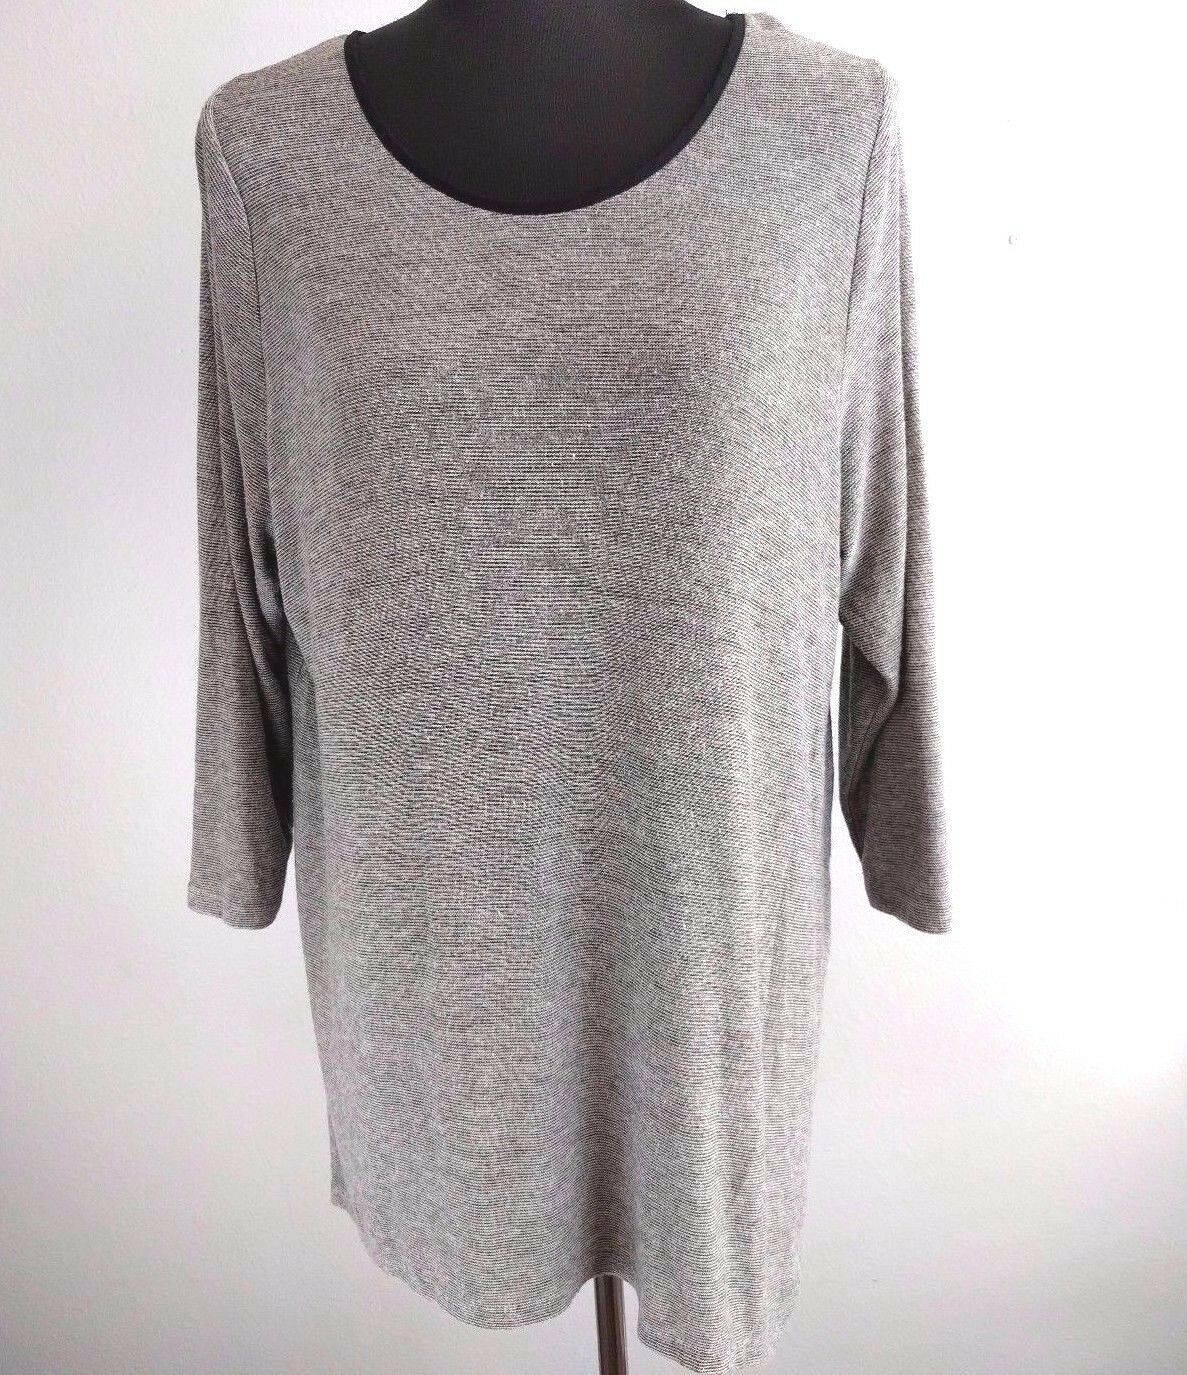 Lane Bryant Womens Tunic Top 14 Gray Black Chiffon Back Zip 3/4 Sleeve High Low - $24.74